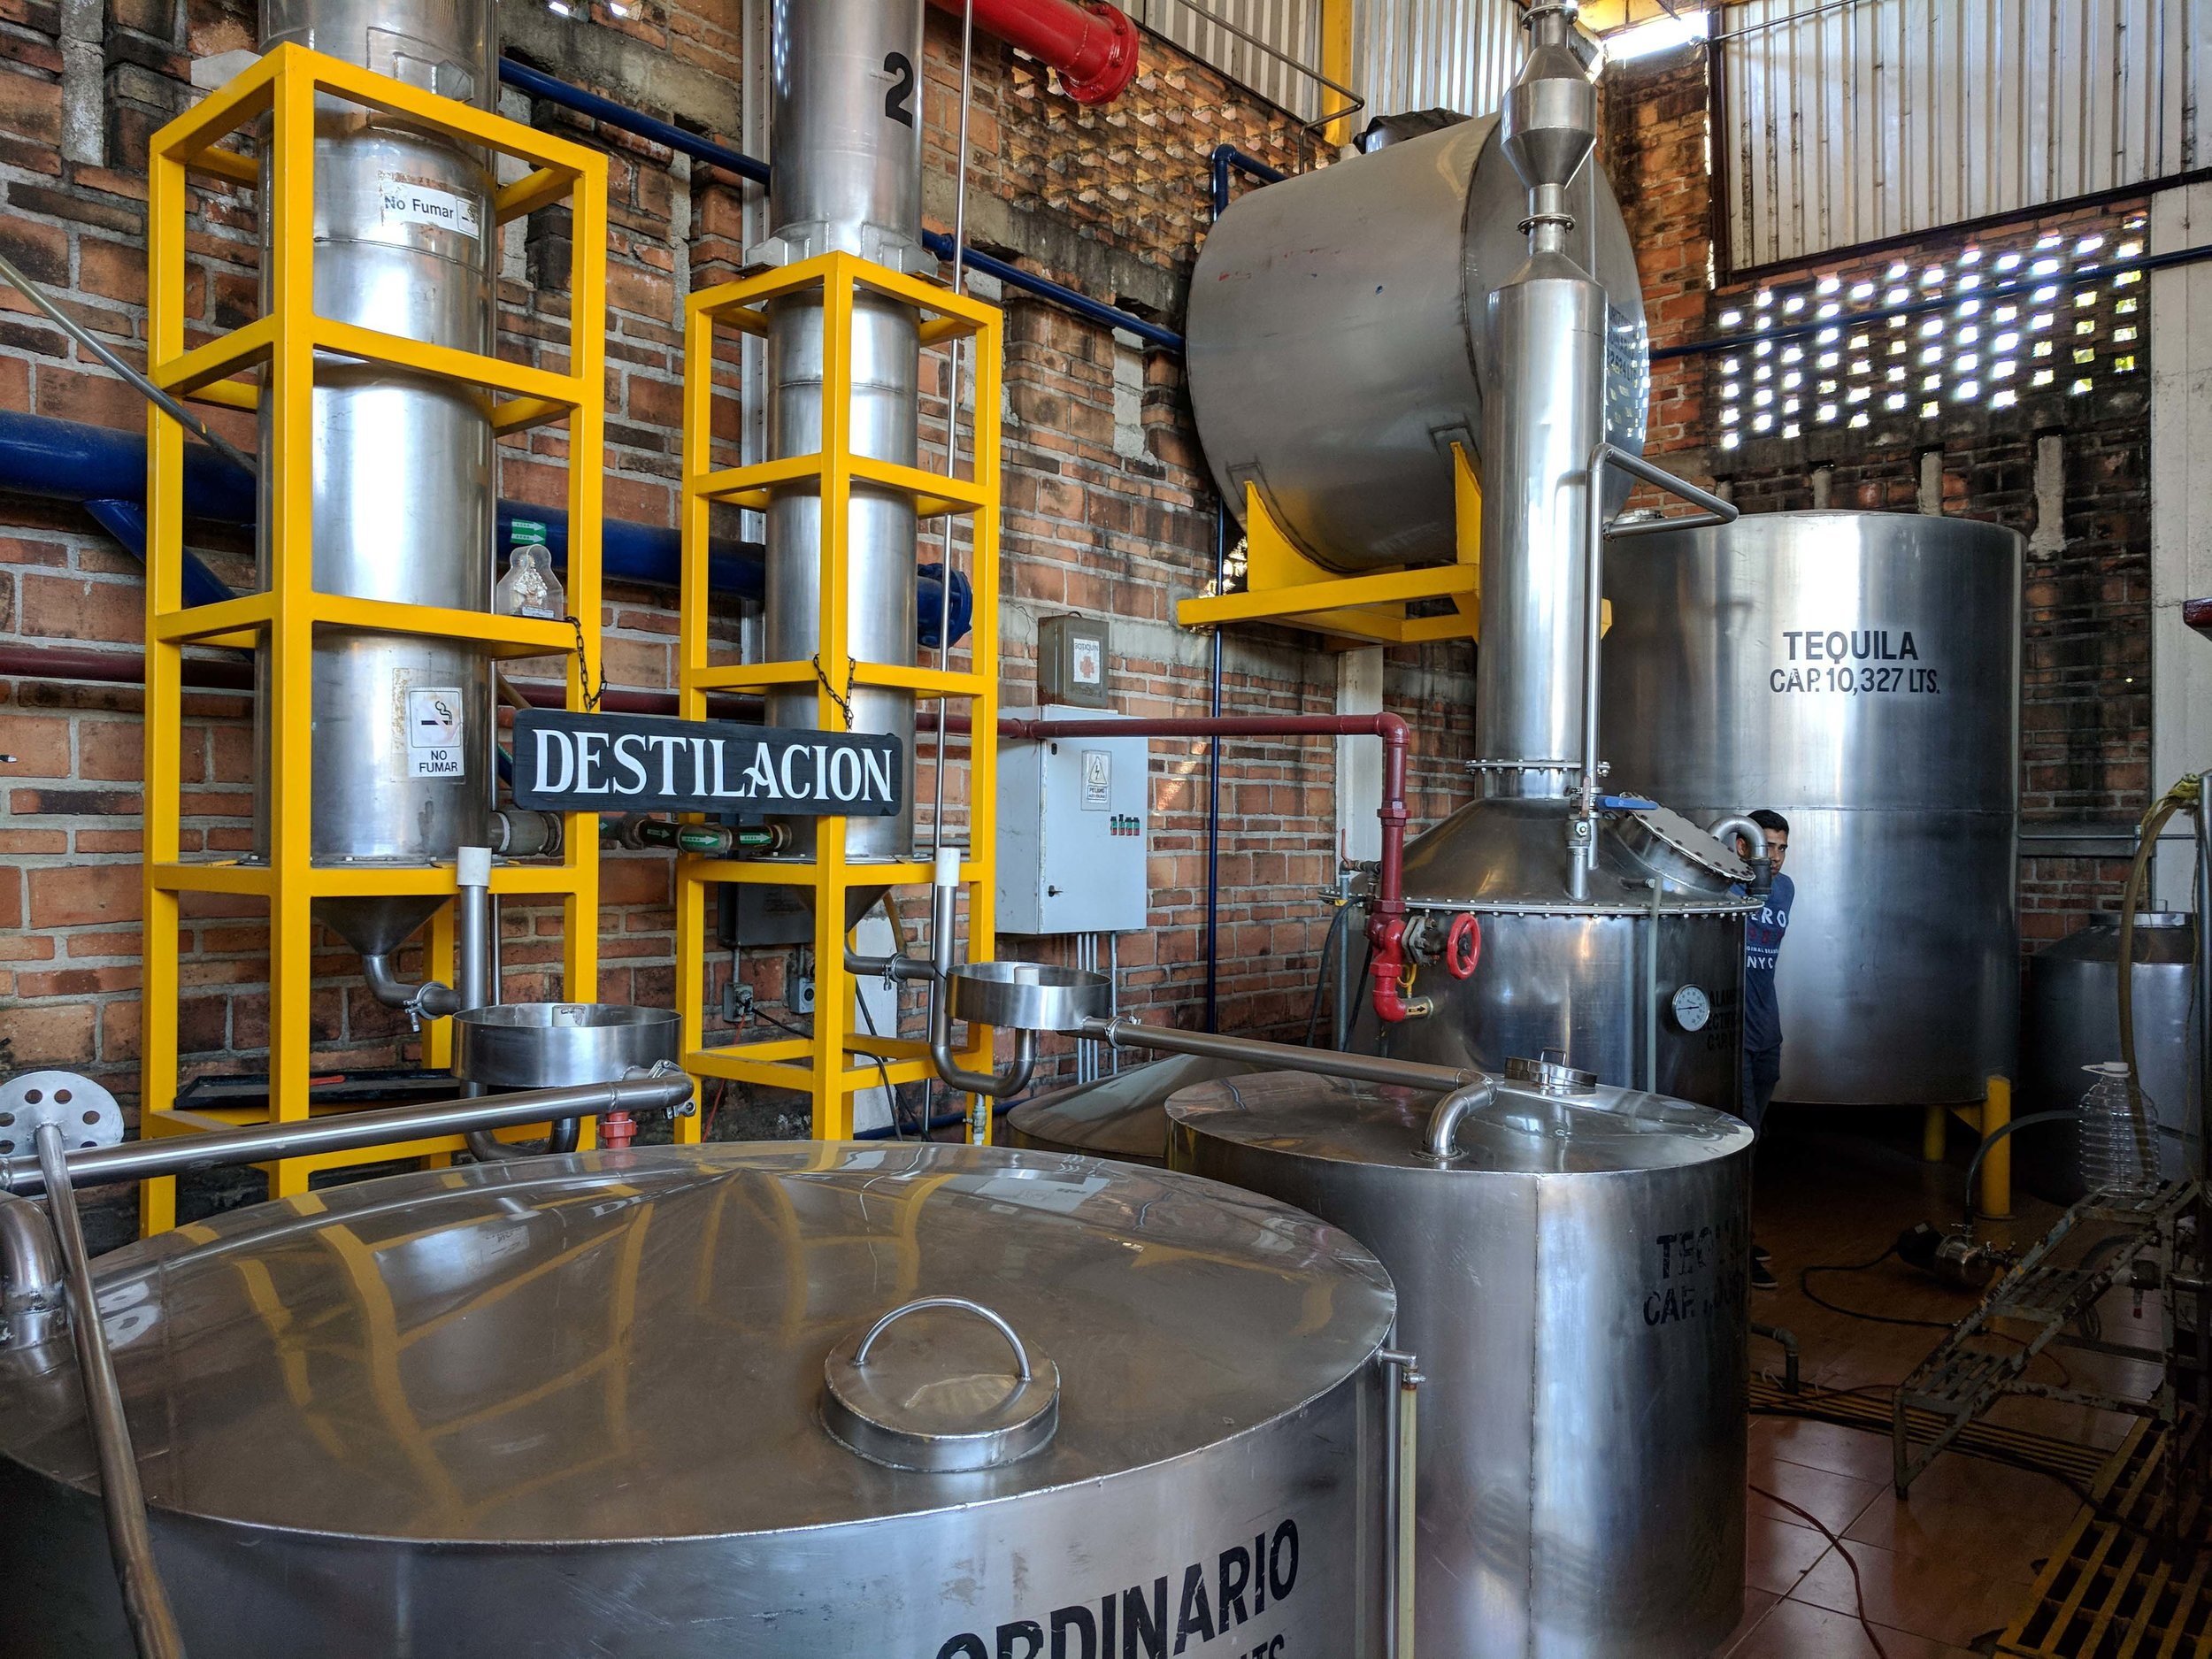 Distillation - First tank is Ordinario, second one is tequila blanco